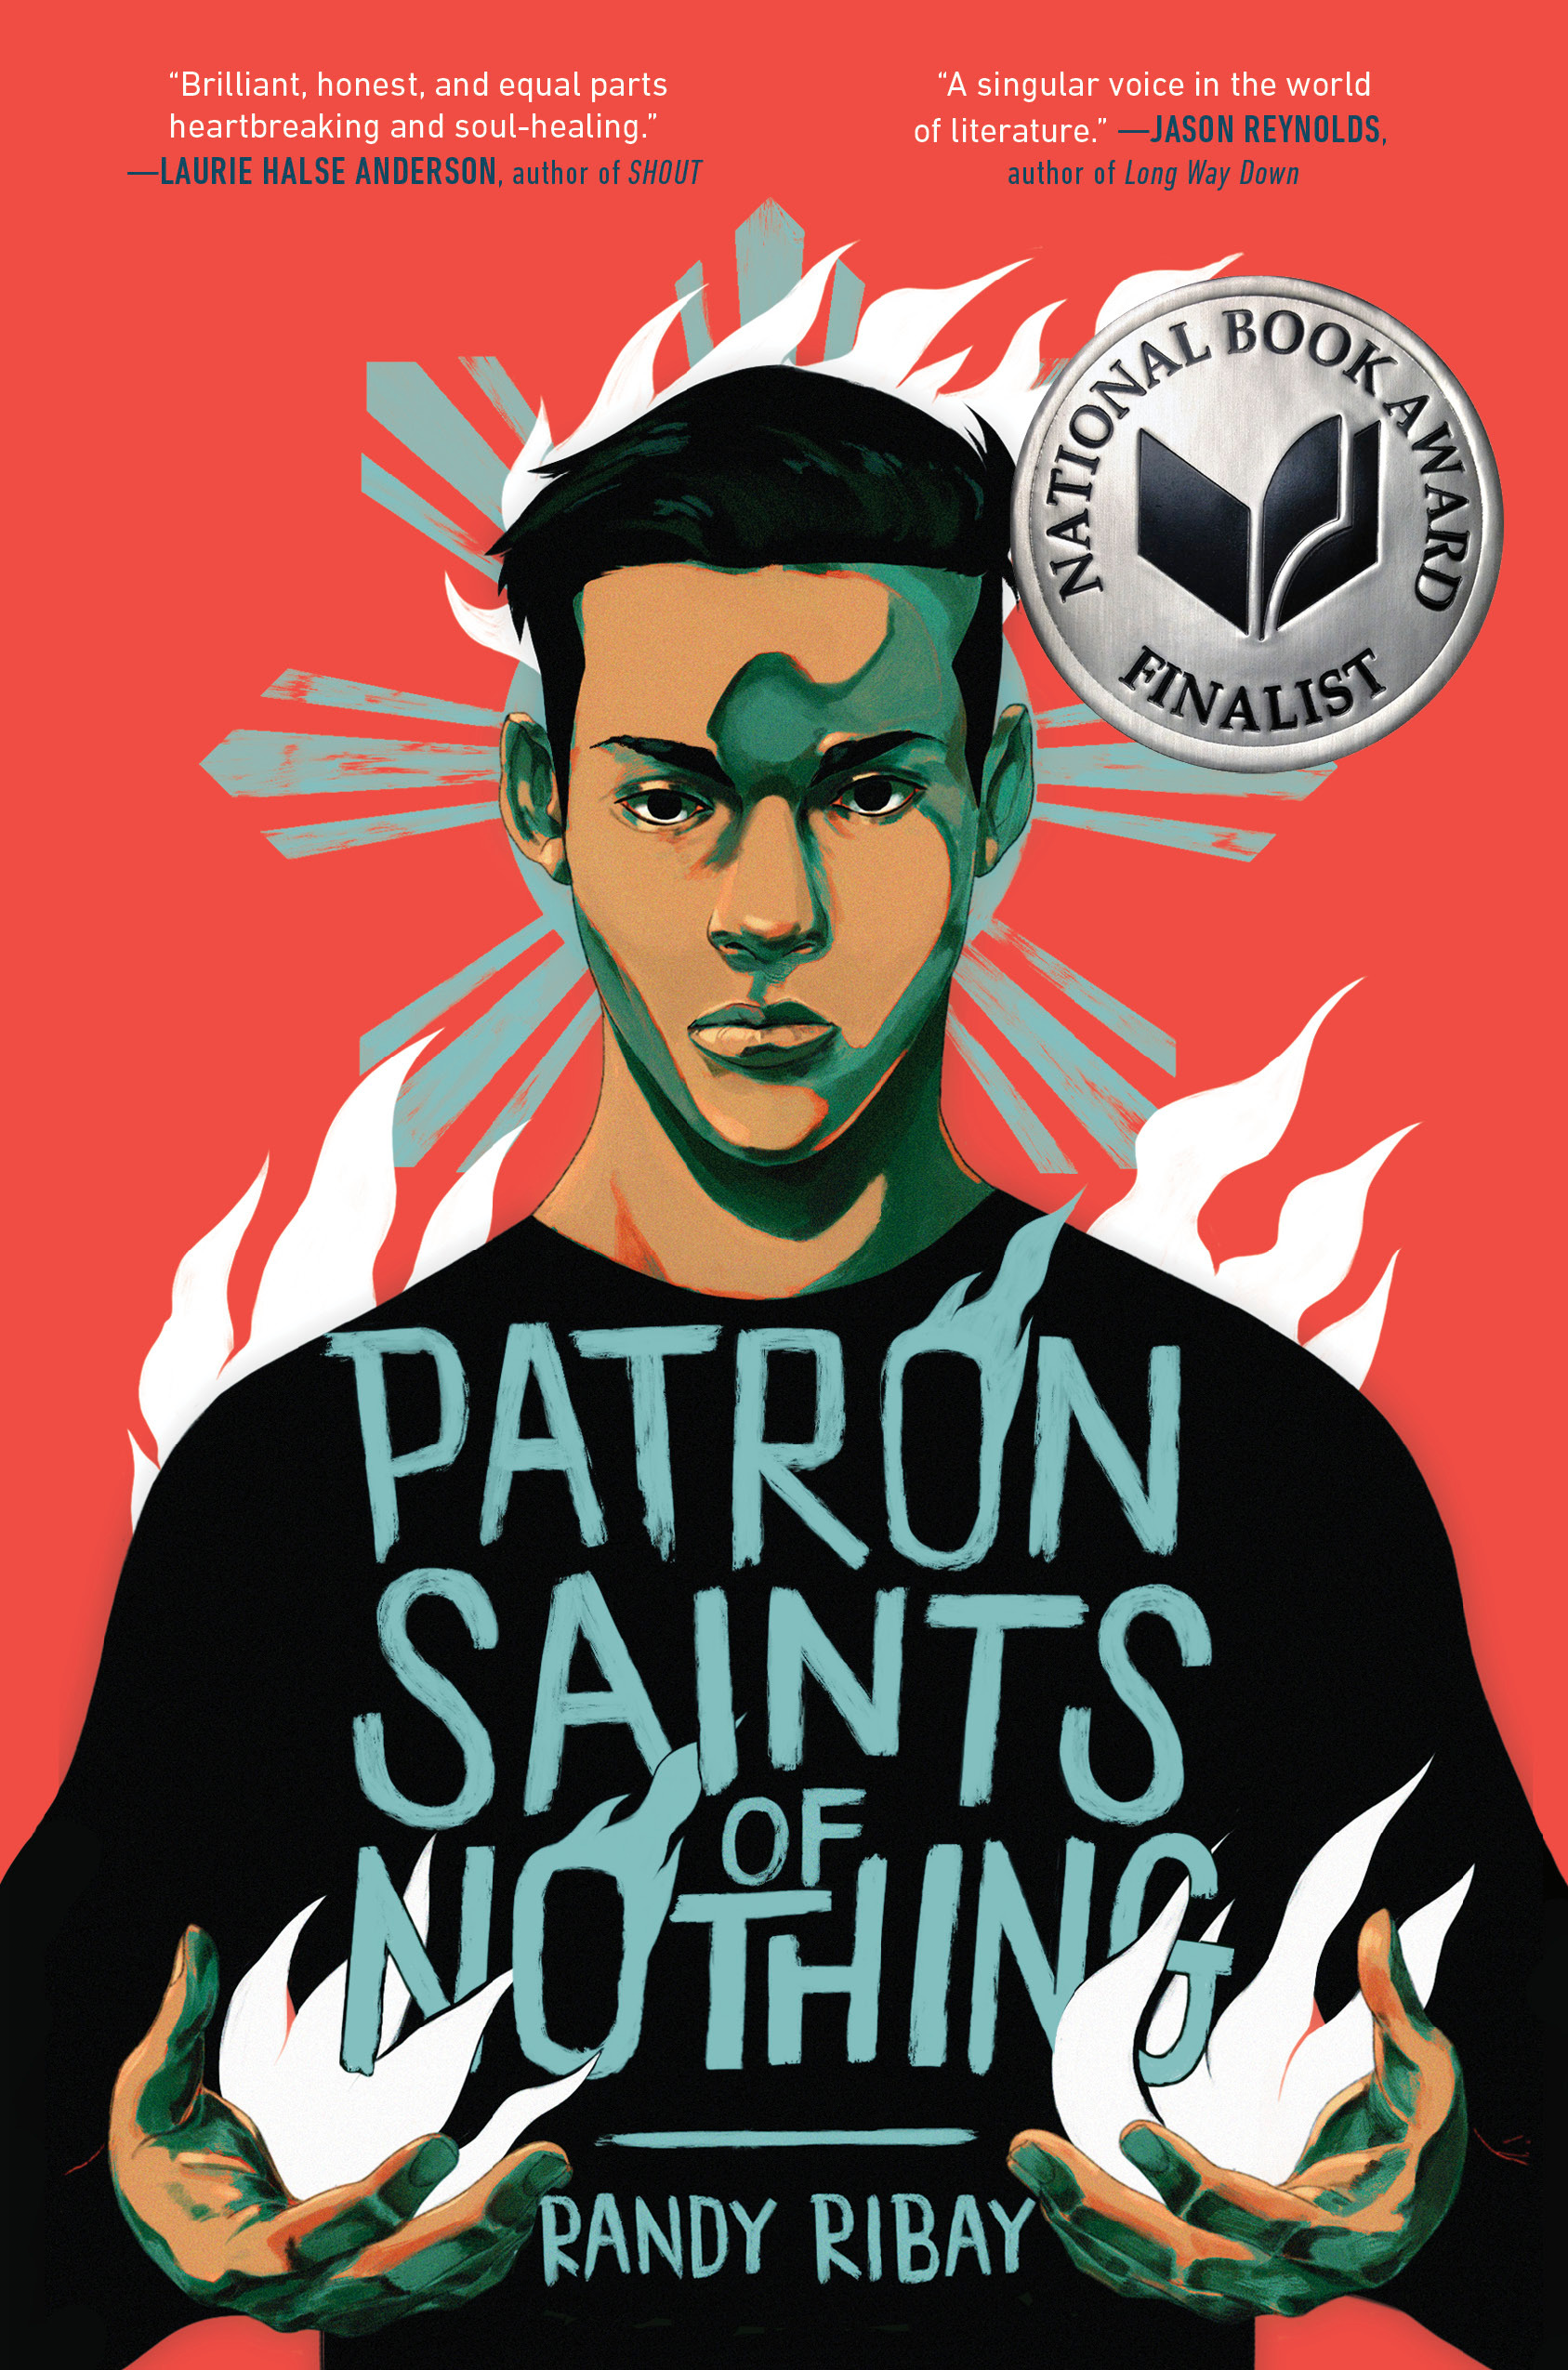 Patron Saints of Nothing by Randy Ribay (23 Books by Filipino Diaspora Authors For Your Shelf)